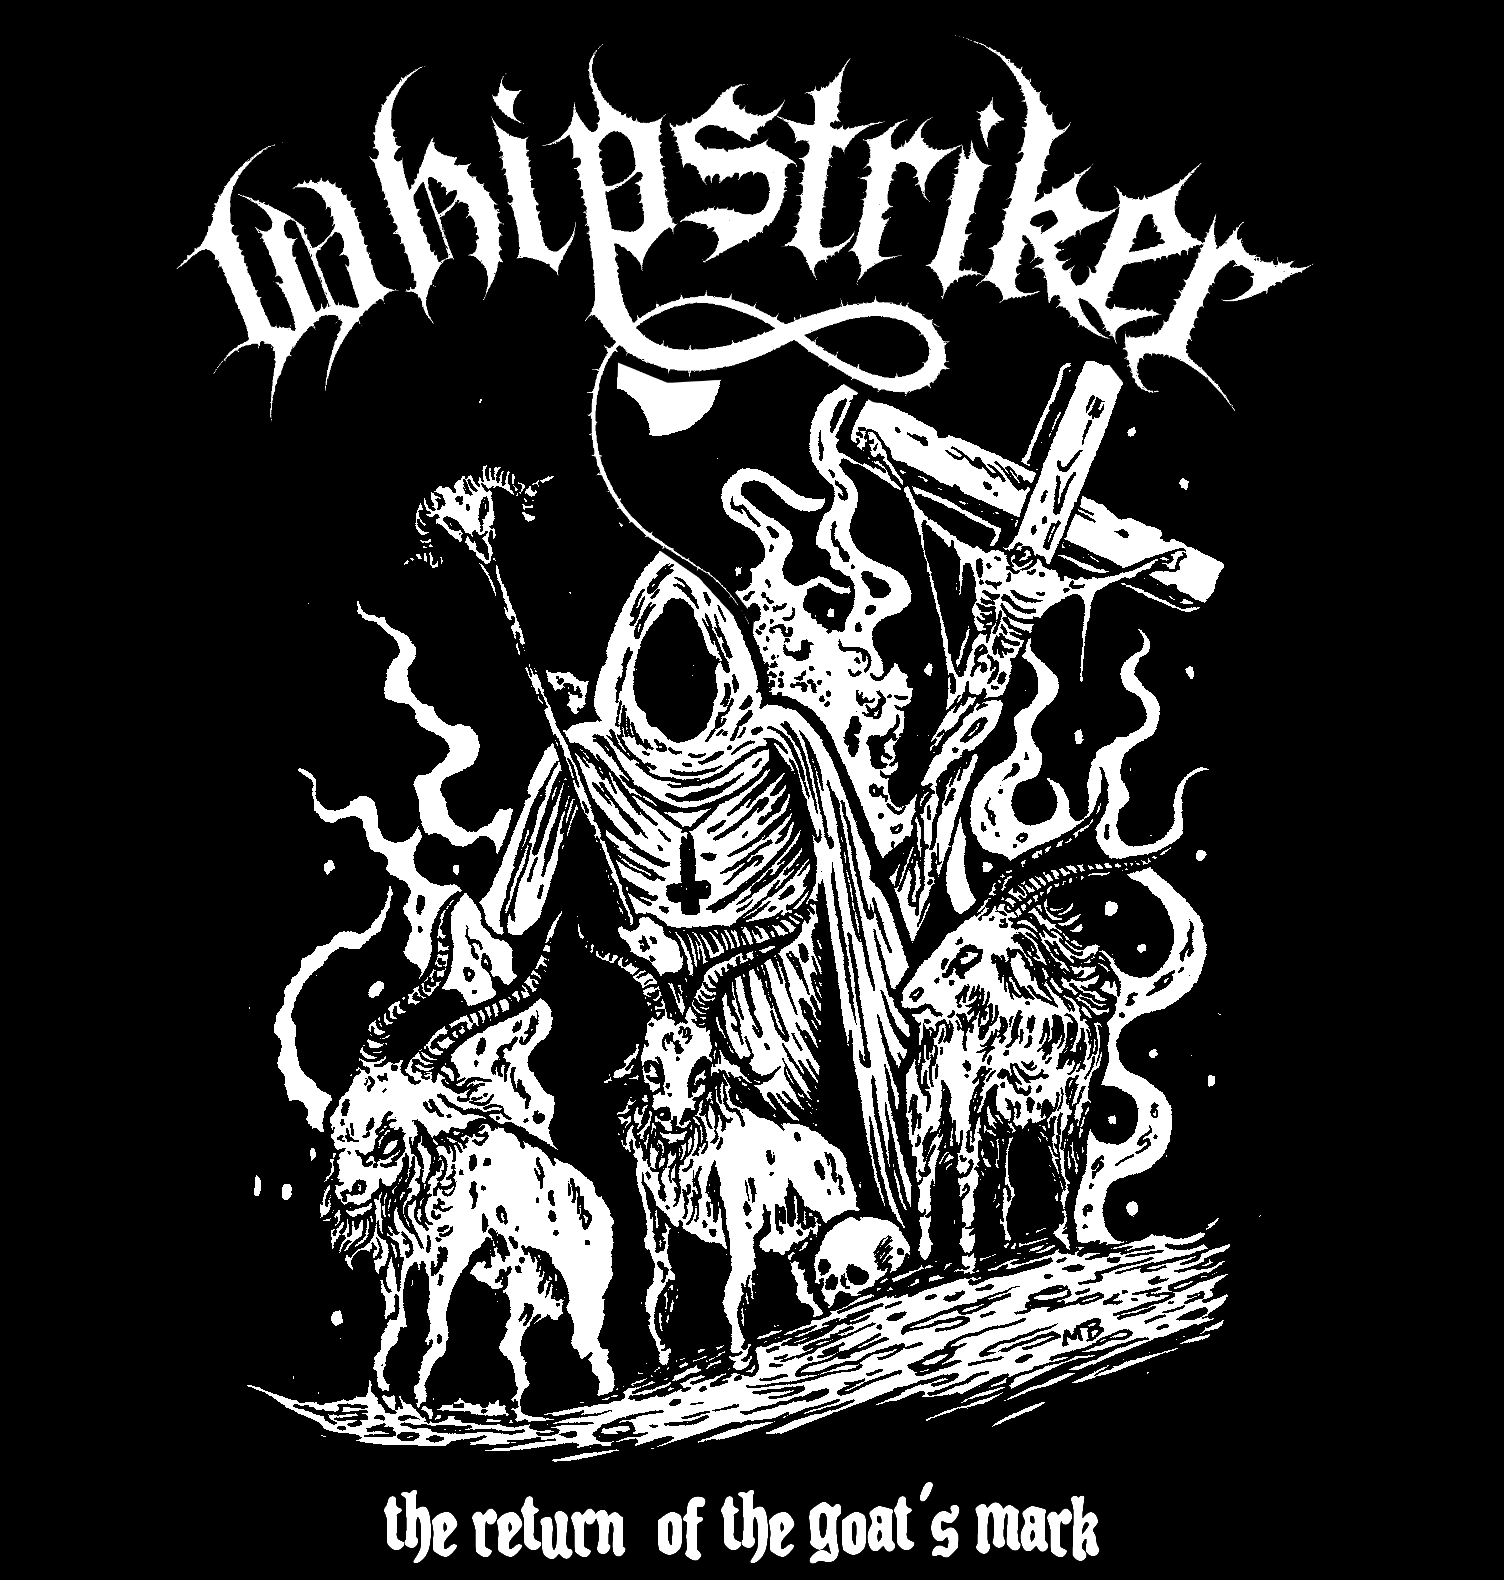 Whipstriker - The Return Of The Goat's Mark - 2014